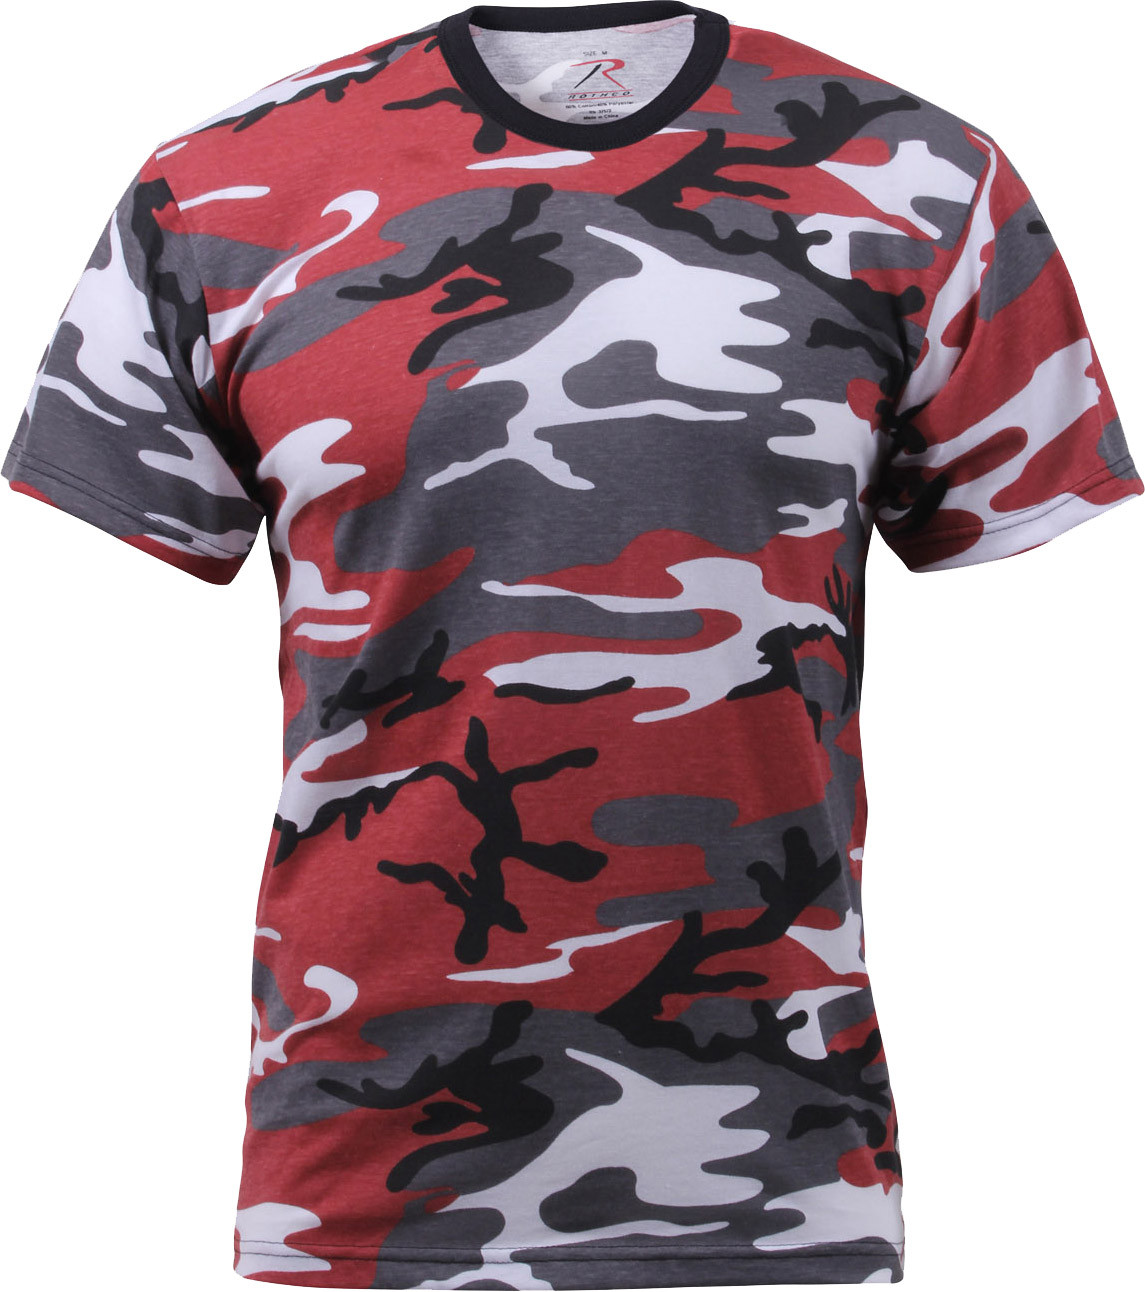 Red Camouflage Military Short Sleeve T-Shirt a23b863d5